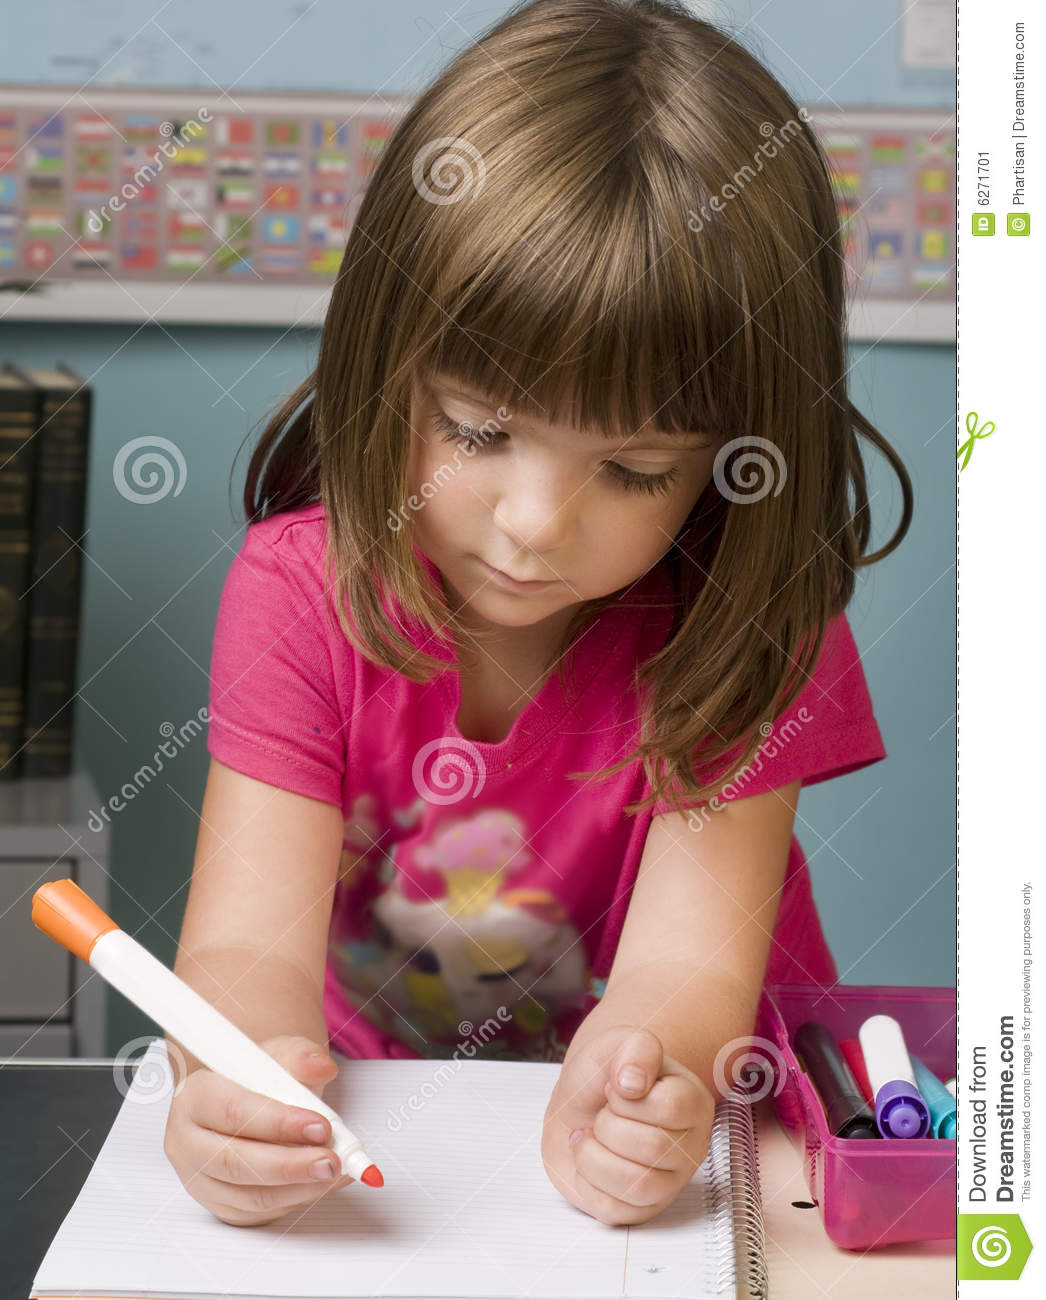 Young child working at her desk in class room